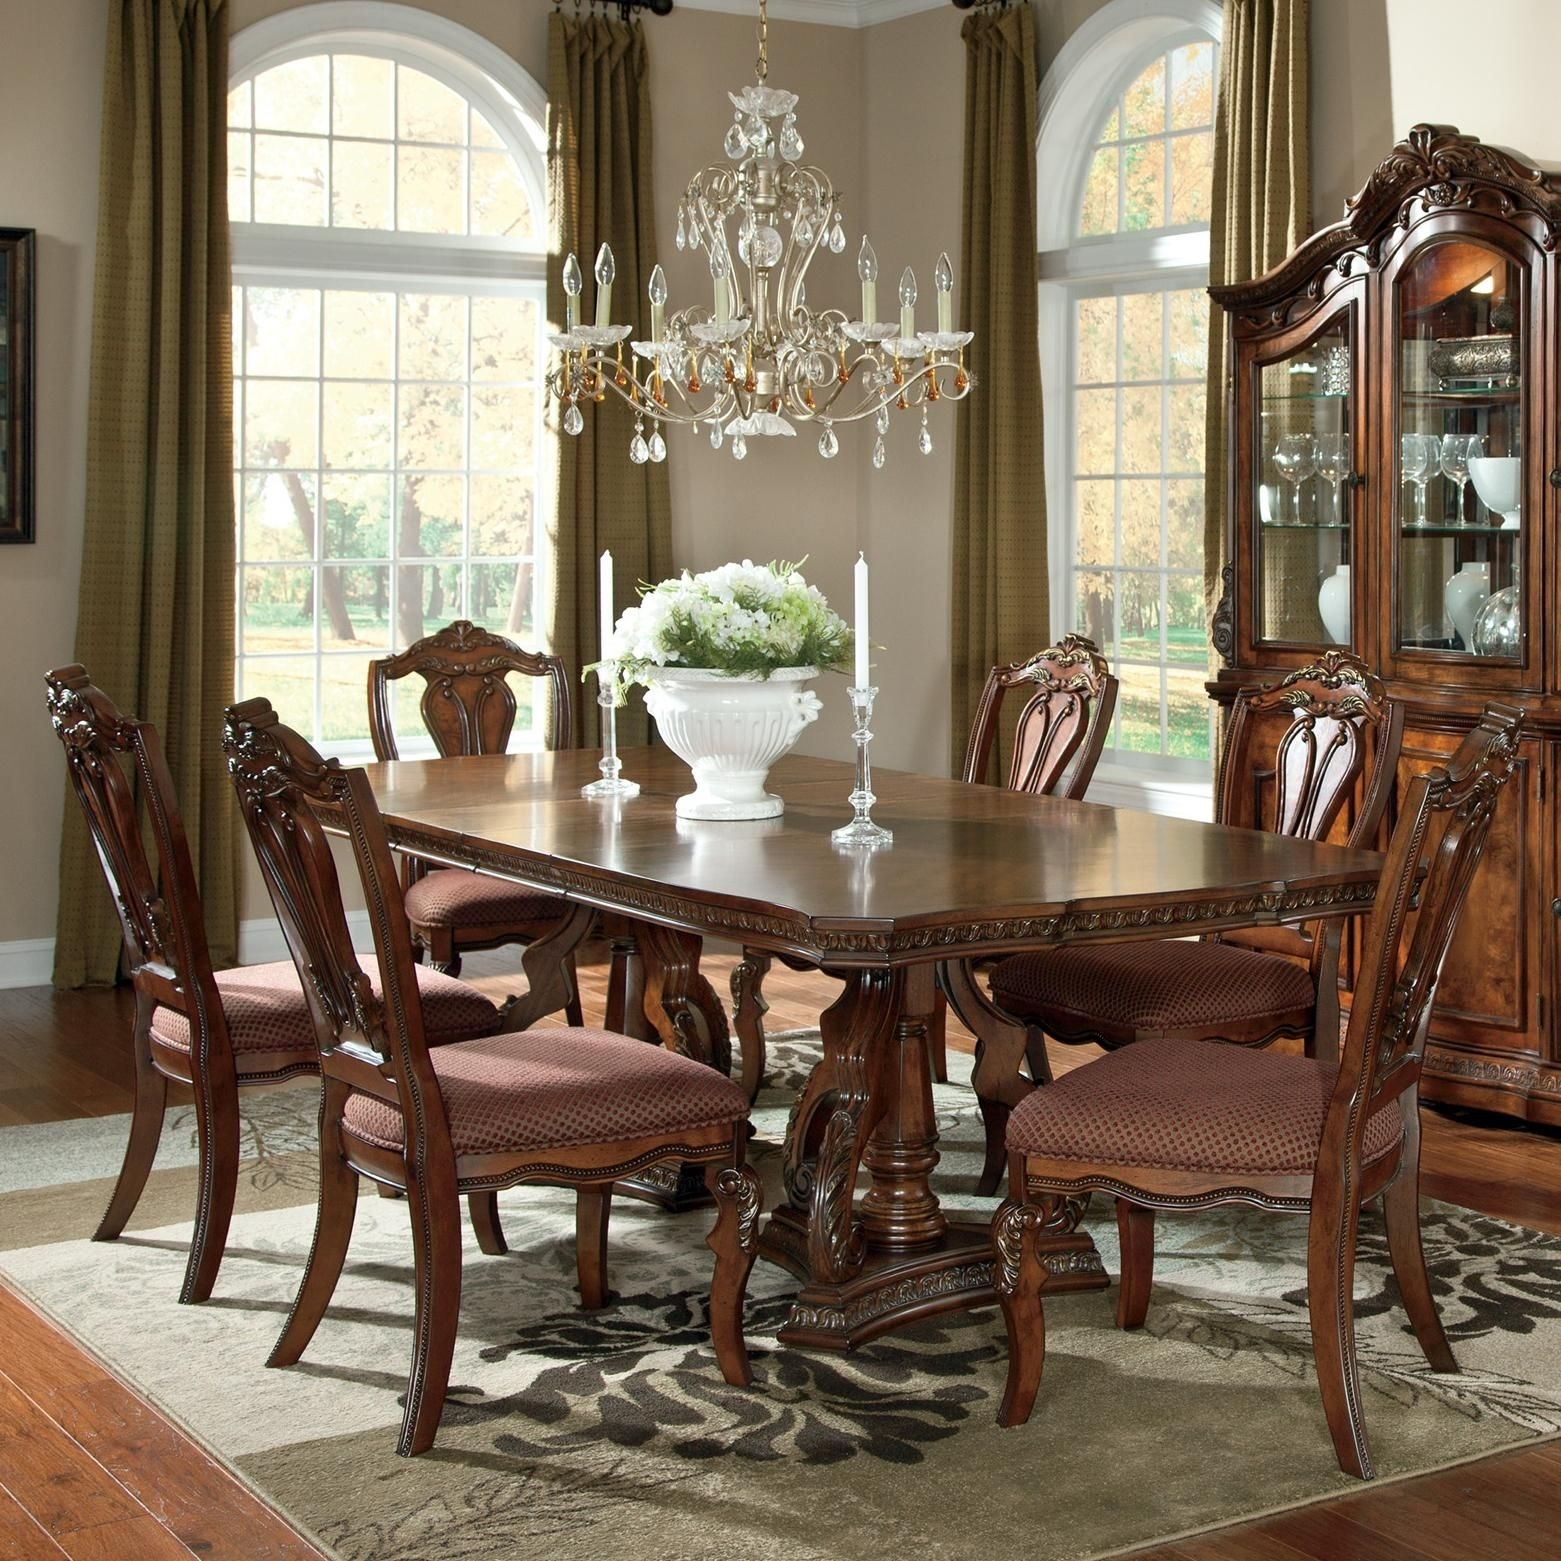 Ledelle 7 Piece Rectangular Table Setashley Millennium | New Throughout Most Popular Market 7 Piece Dining Sets With Side Chairs (View 8 of 20)